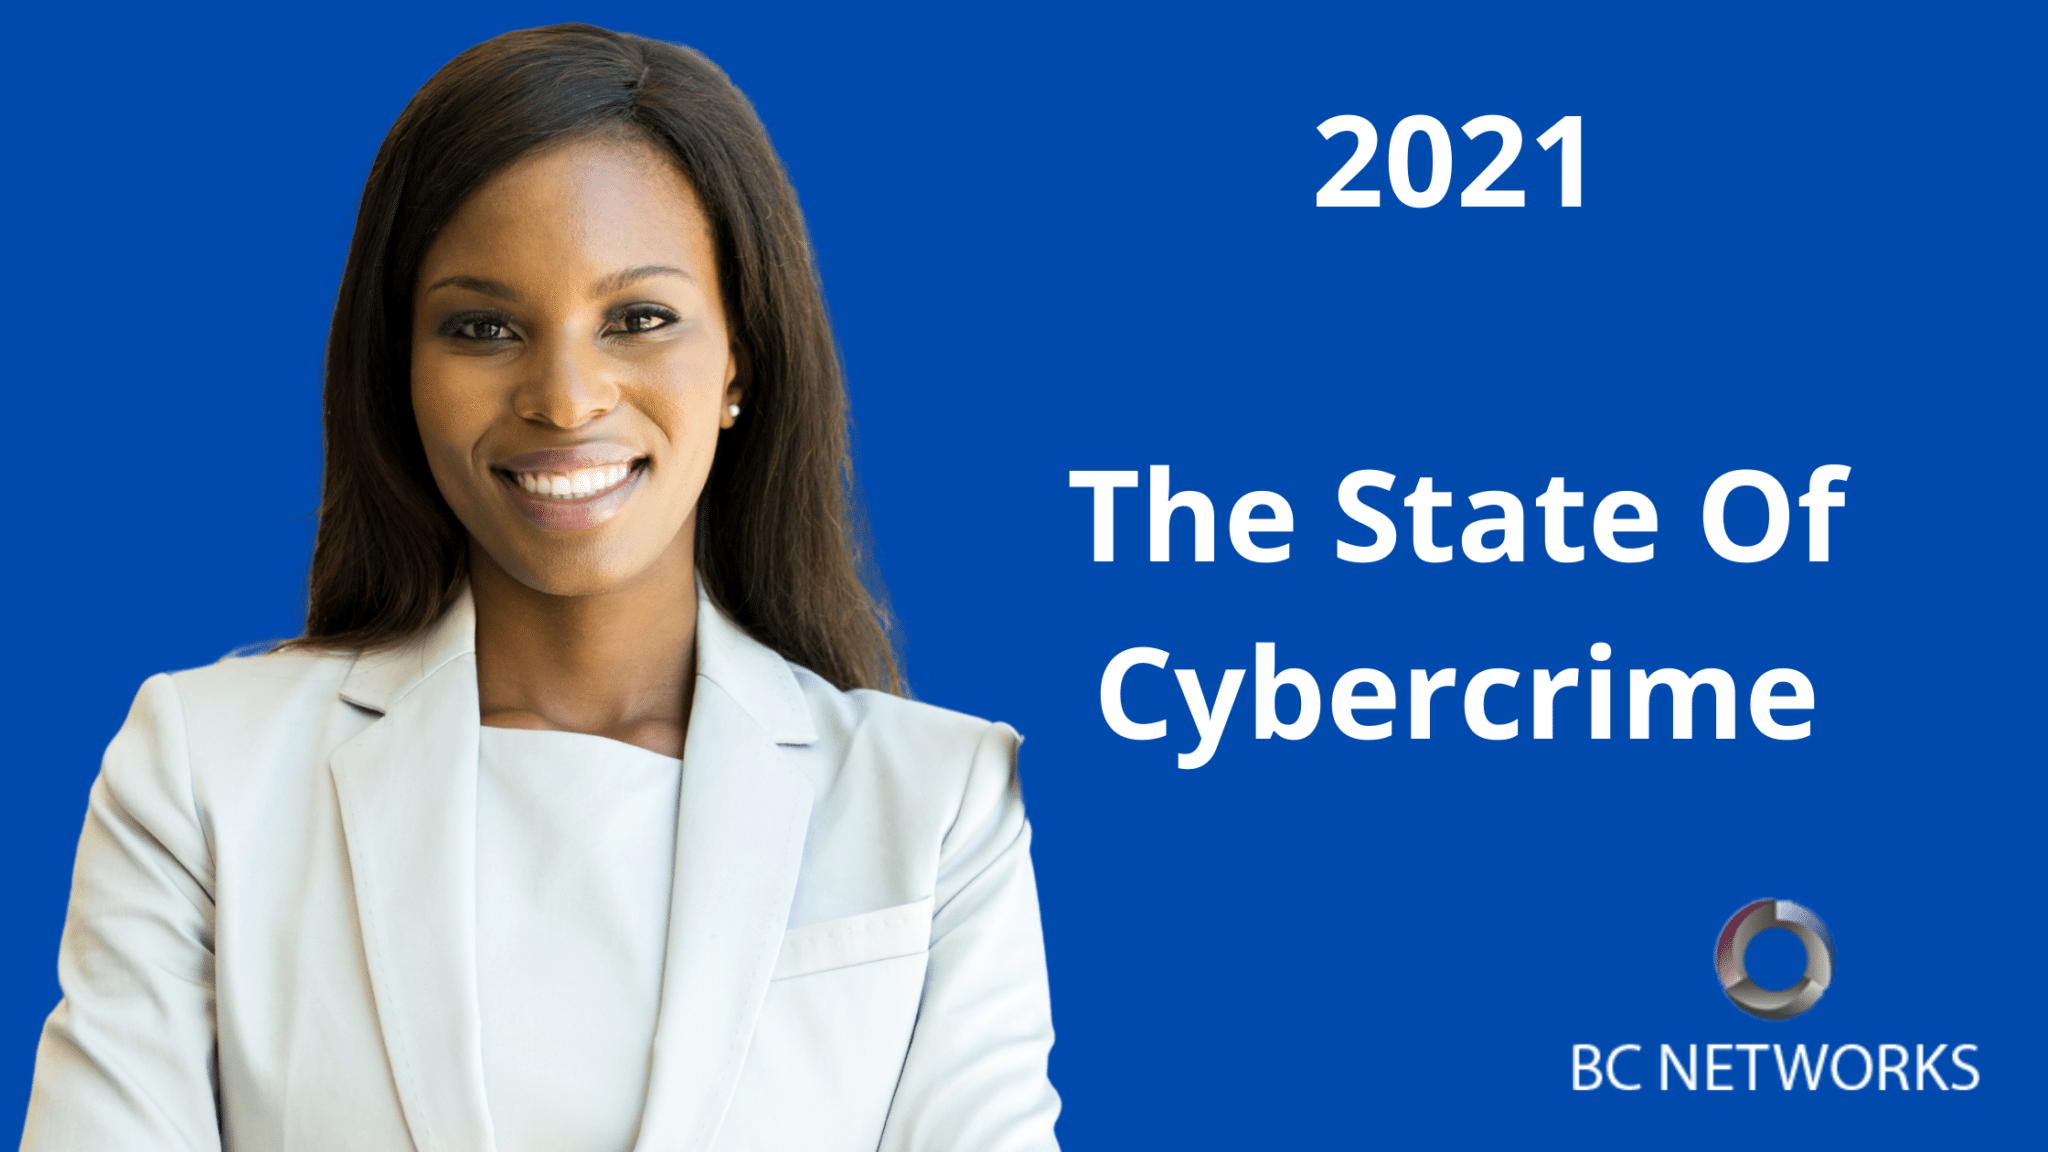 2021: The State Of Cybercrime